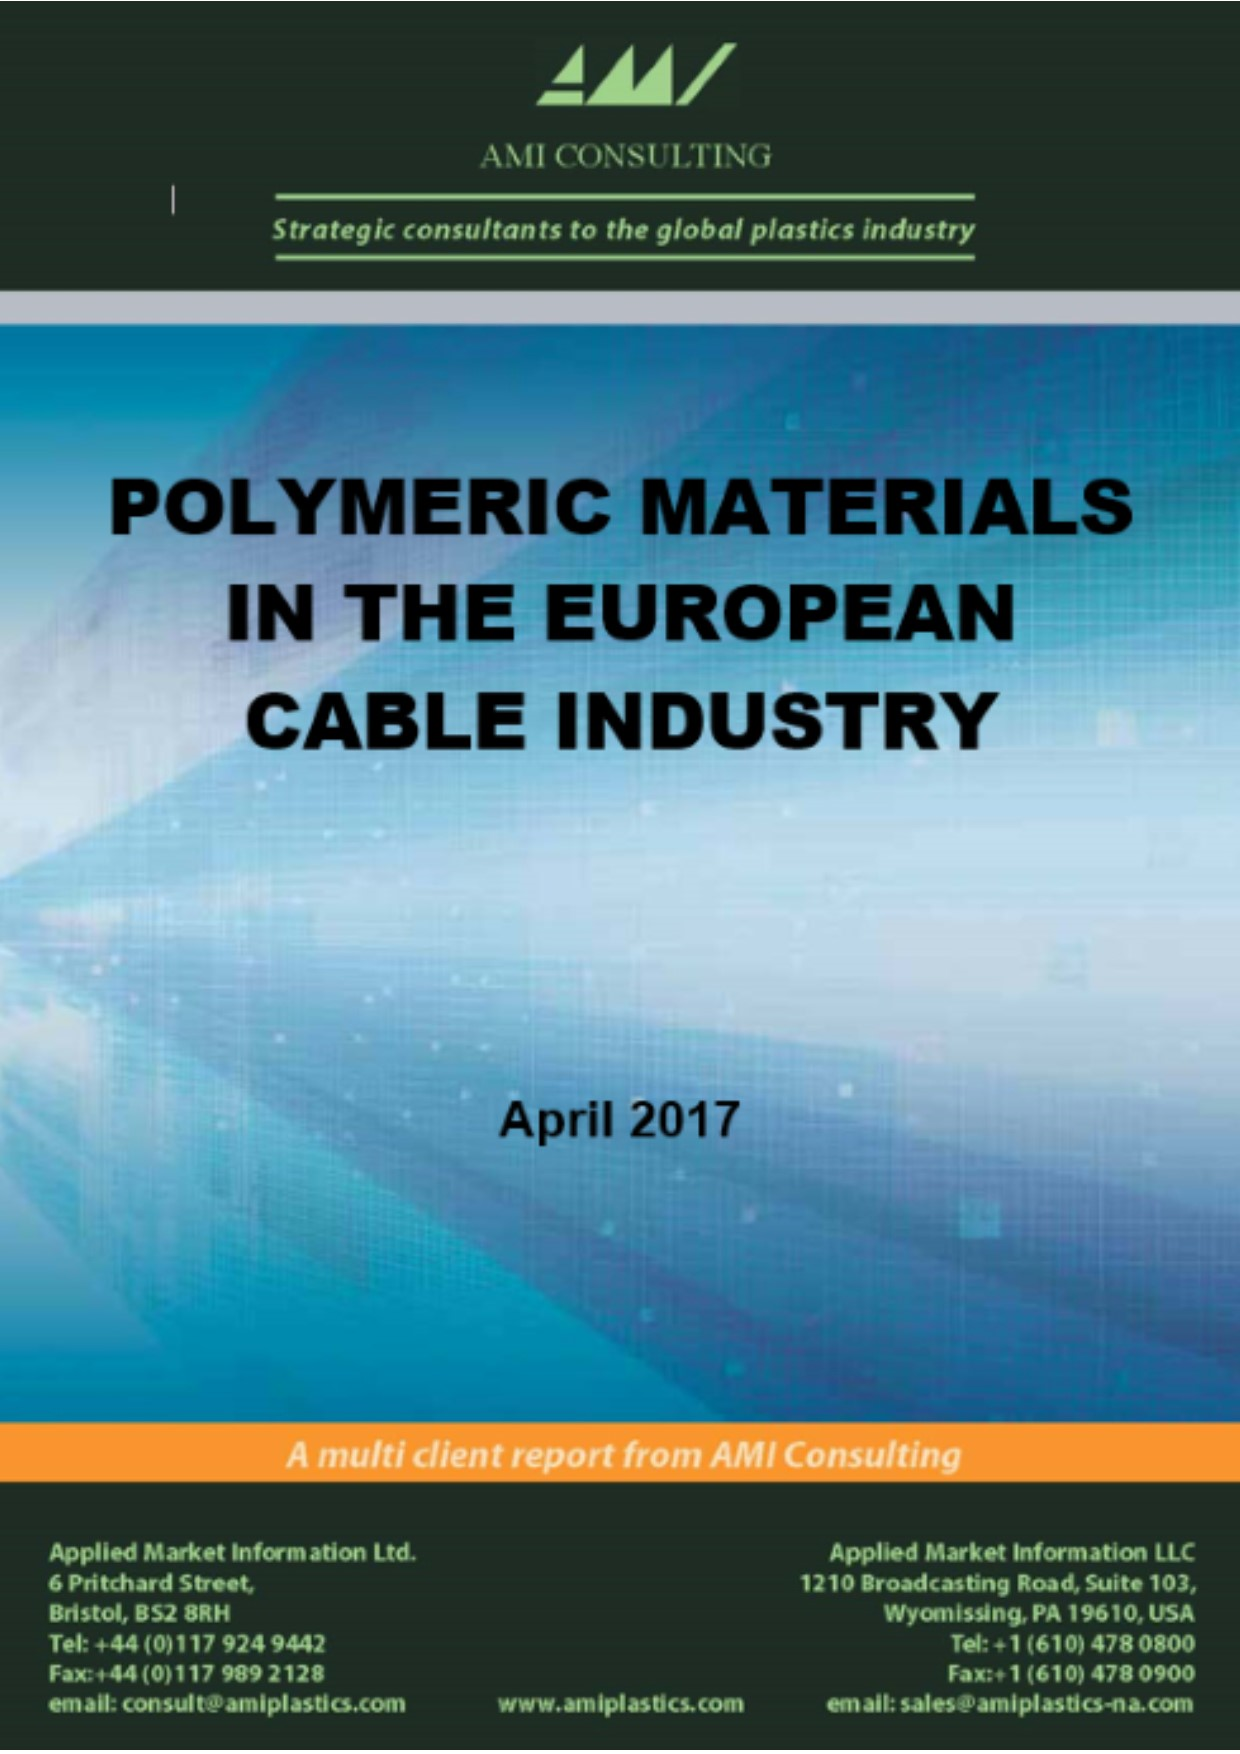 Polymeric materials in the European cable industry 2017